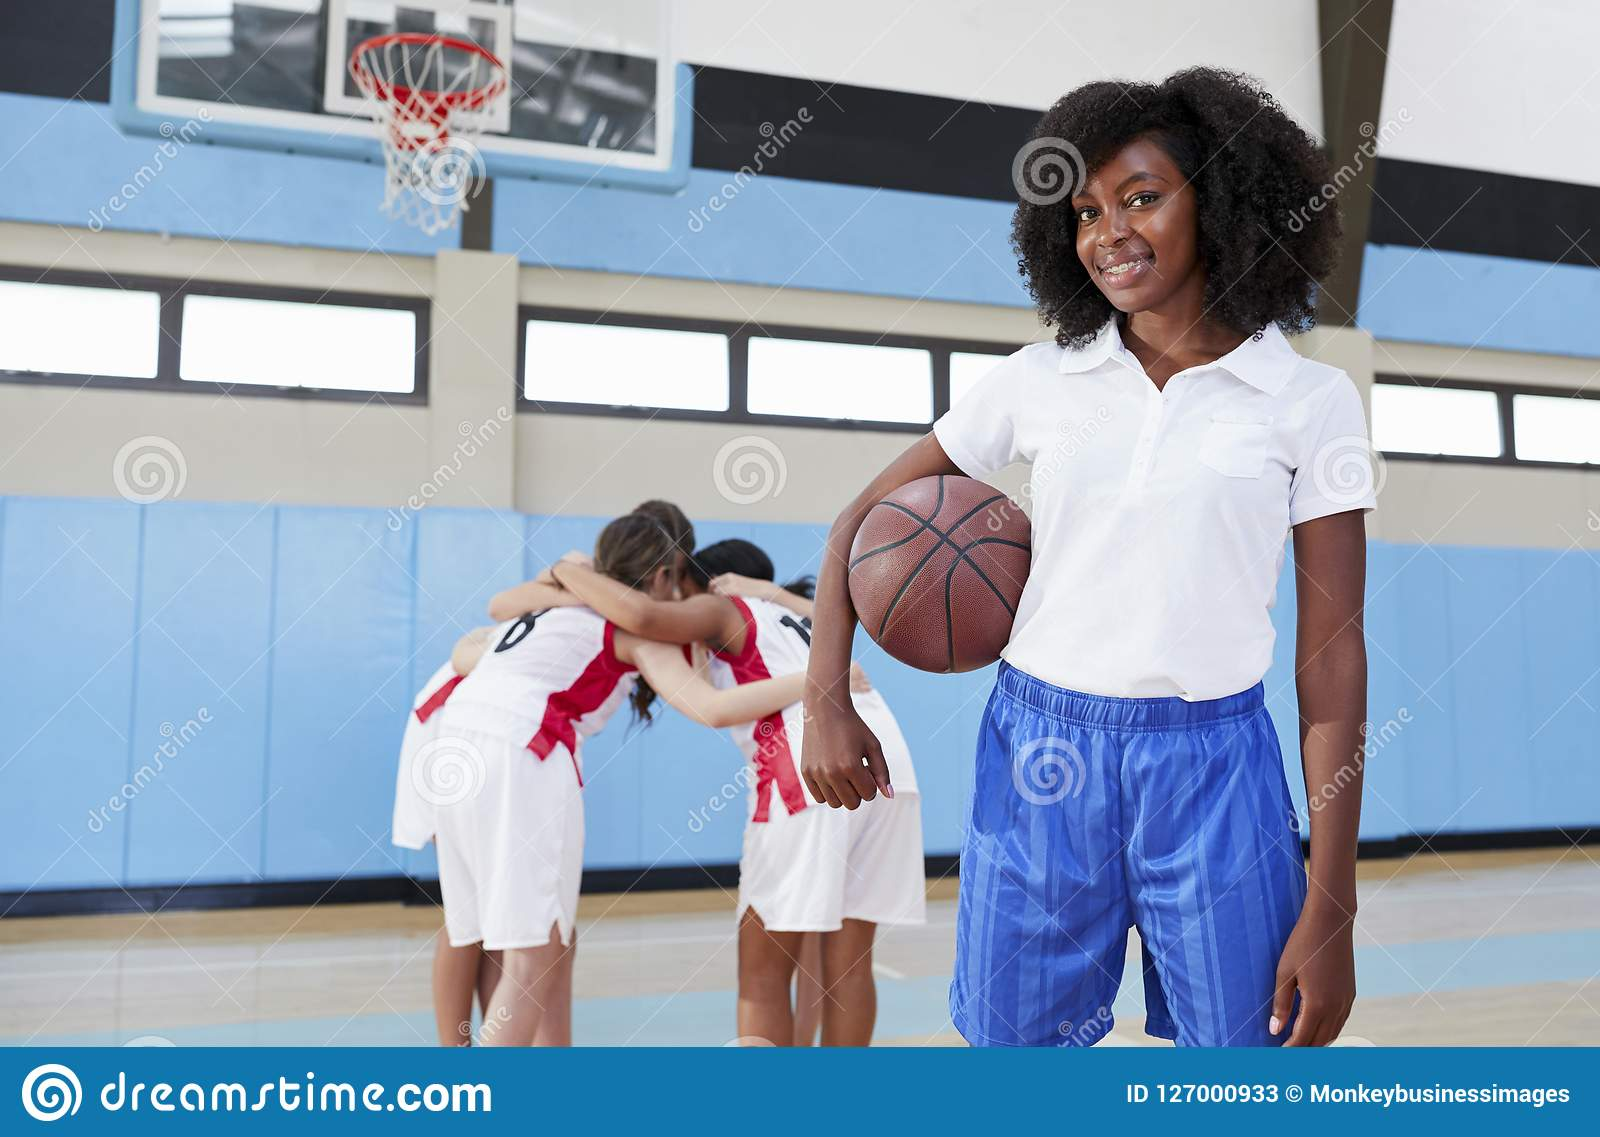 Portrait Of Female High School Basketball Coach With Team Huddle In Background